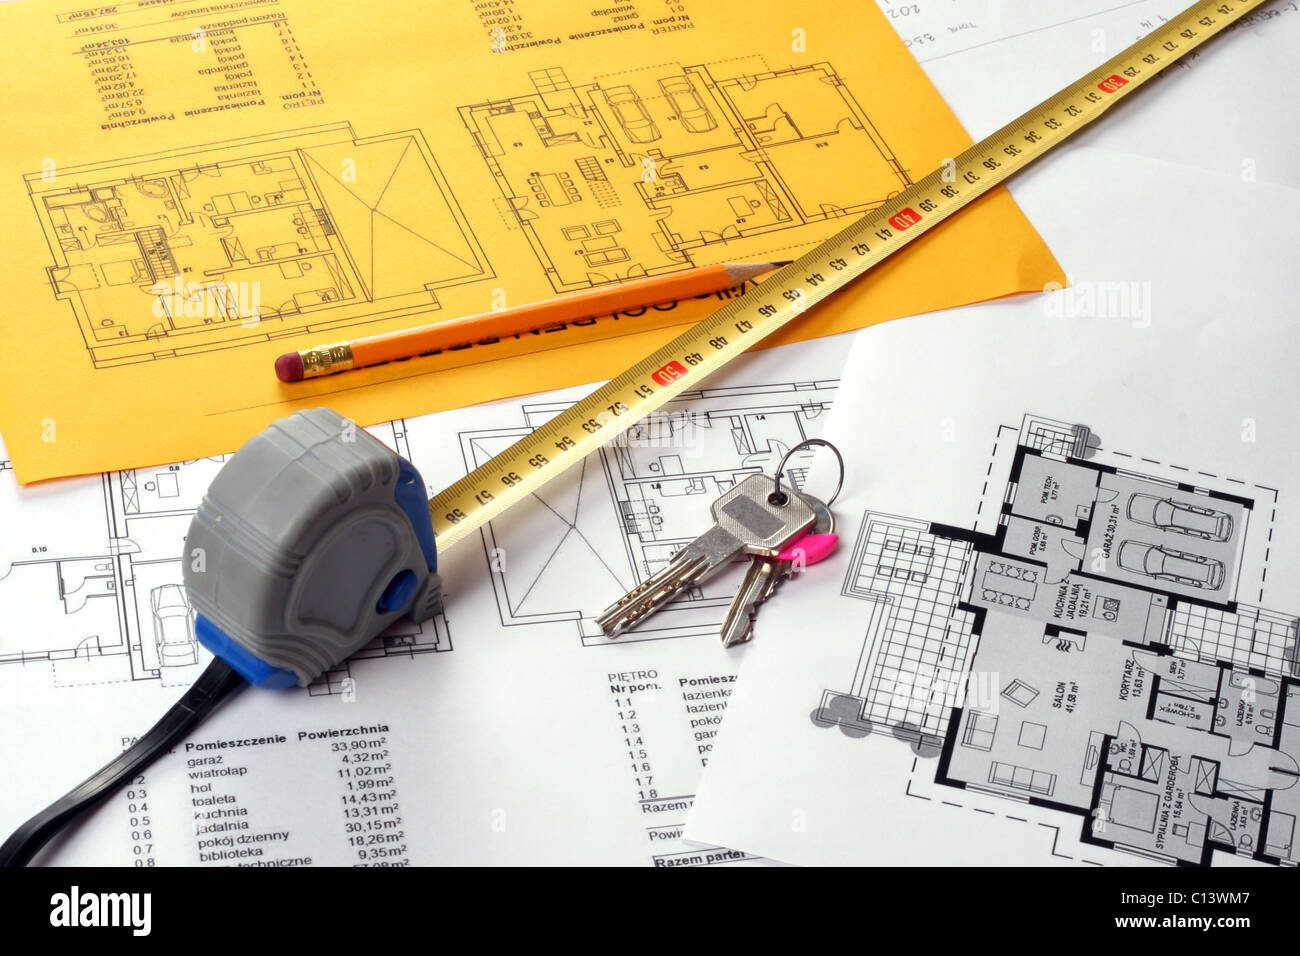 Tools on Blueprints including measuring tape, keys and pencil. House plans printed on white and yellow paper - Stock Image